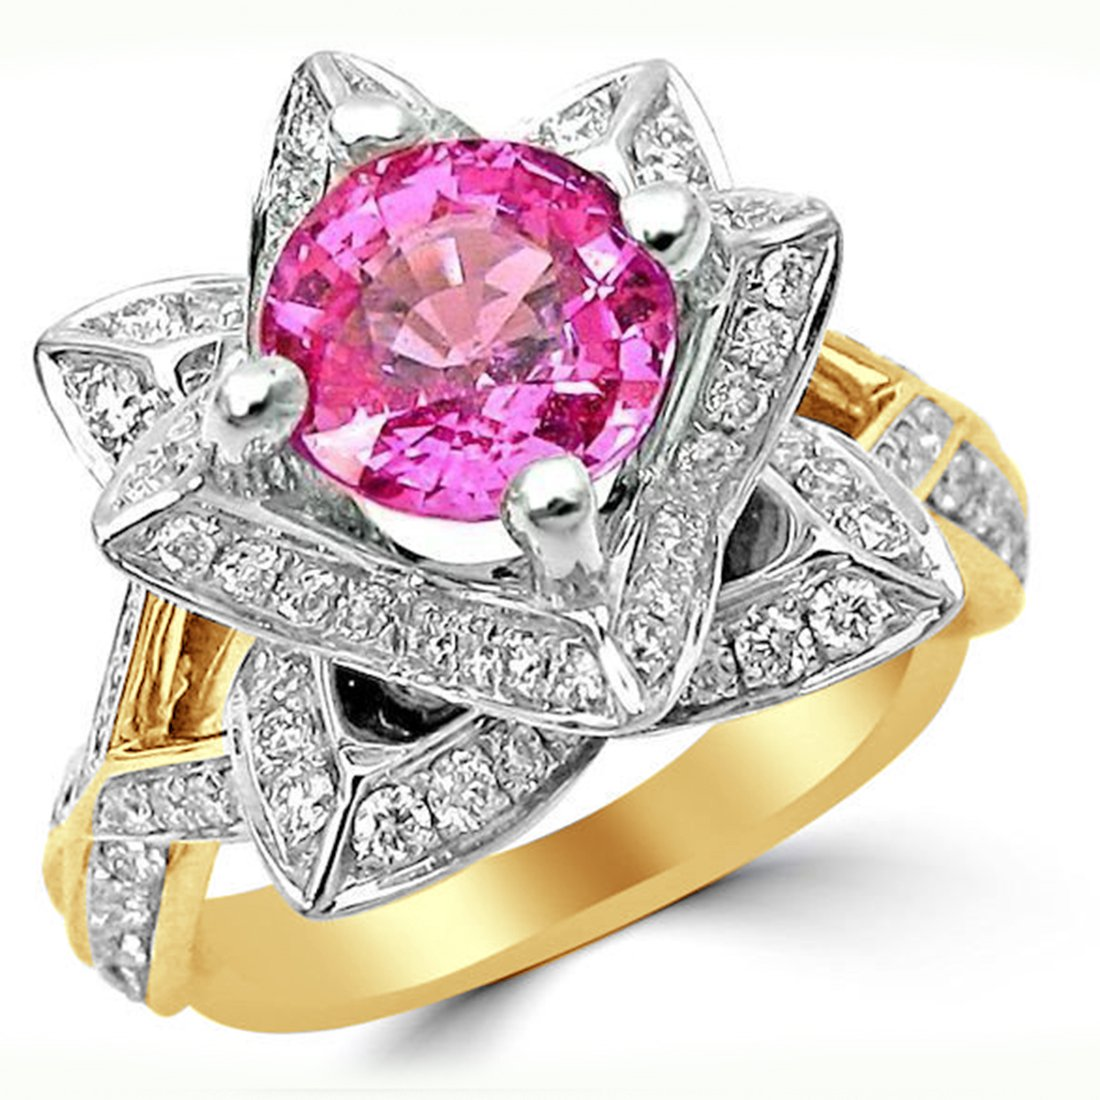 Smjewels 2.0 Ct Round Pink Sapphire & Sim.Diamond Lotus Flower Ring In 14K Yellow Gold Plated